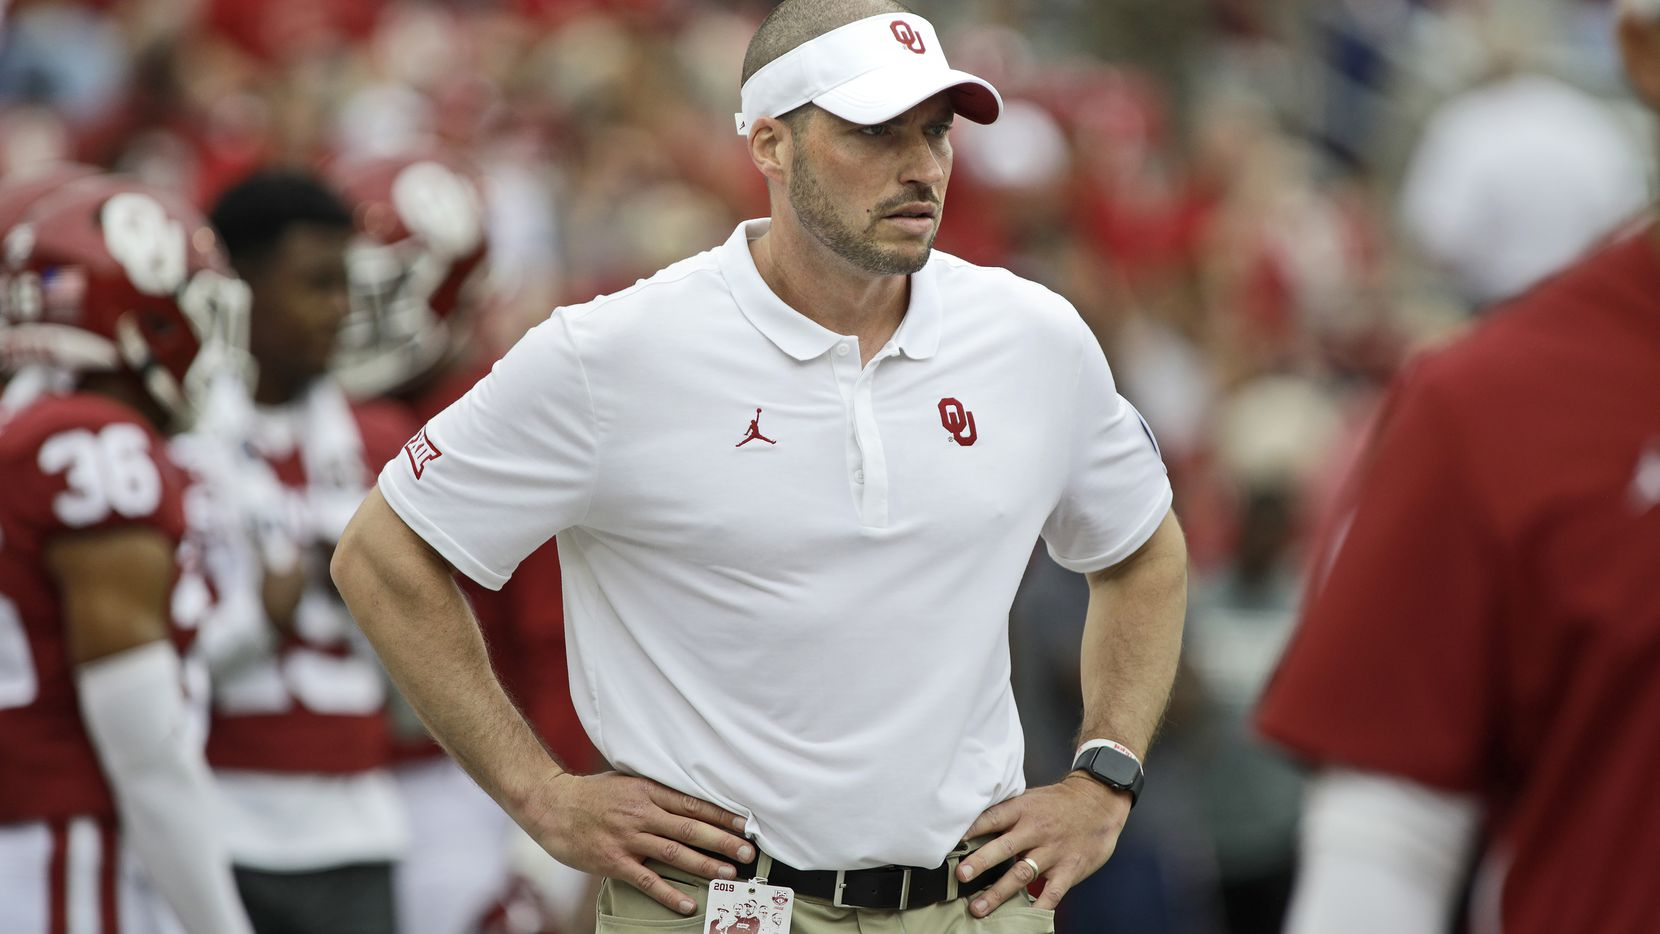 Defensive coordinator Alex Grinch observers warm ups before the game against the Texas Tech Red Raiders at Gaylord Family Oklahoma Memorial Stadium on September 28, 2019 in Norman, Oklahoma. The Sooners defeated the Red Raiders 55-16. (Photo by Brett Deering/Getty Images)